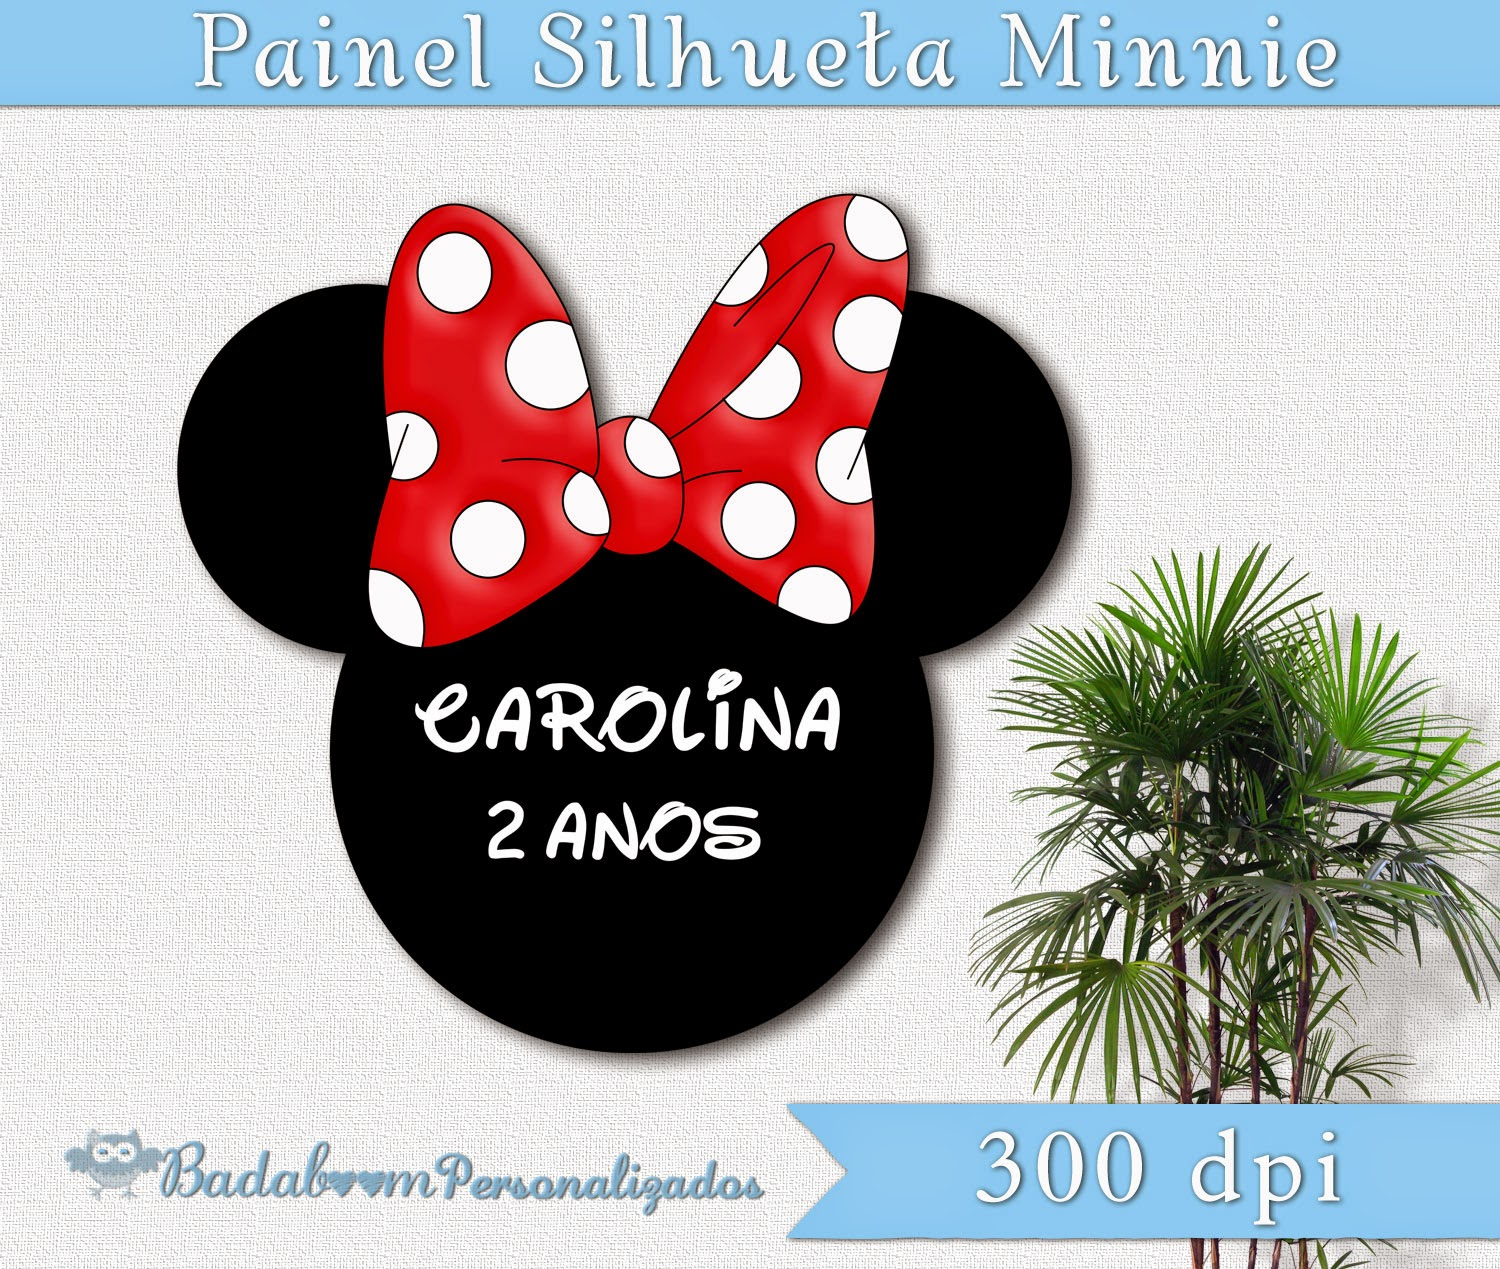 Personalizados, painel, banner, minnie, silhueta